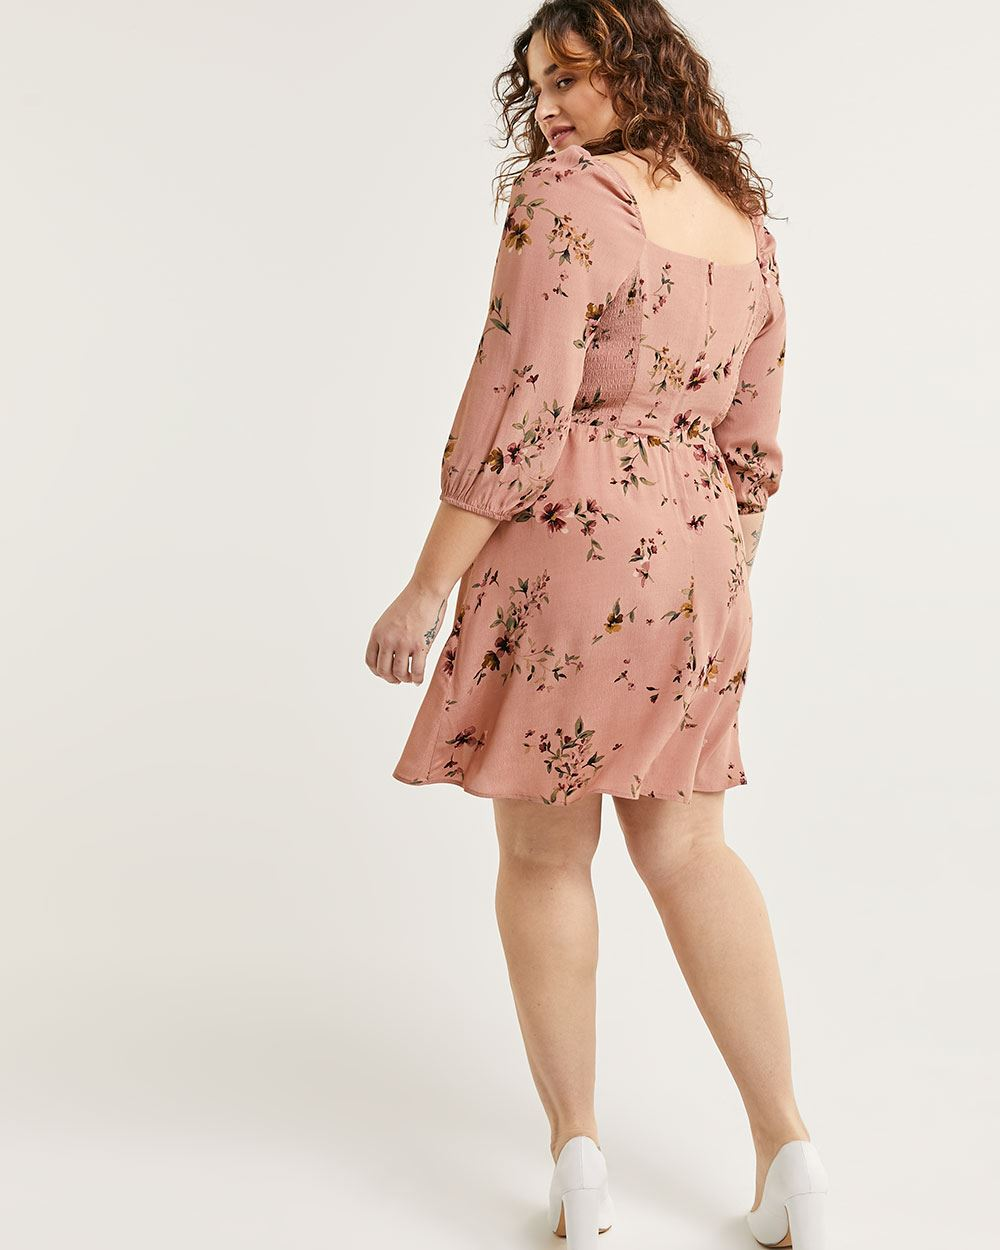 3/4 Sleeve Floral Print Fit & Flare Dress